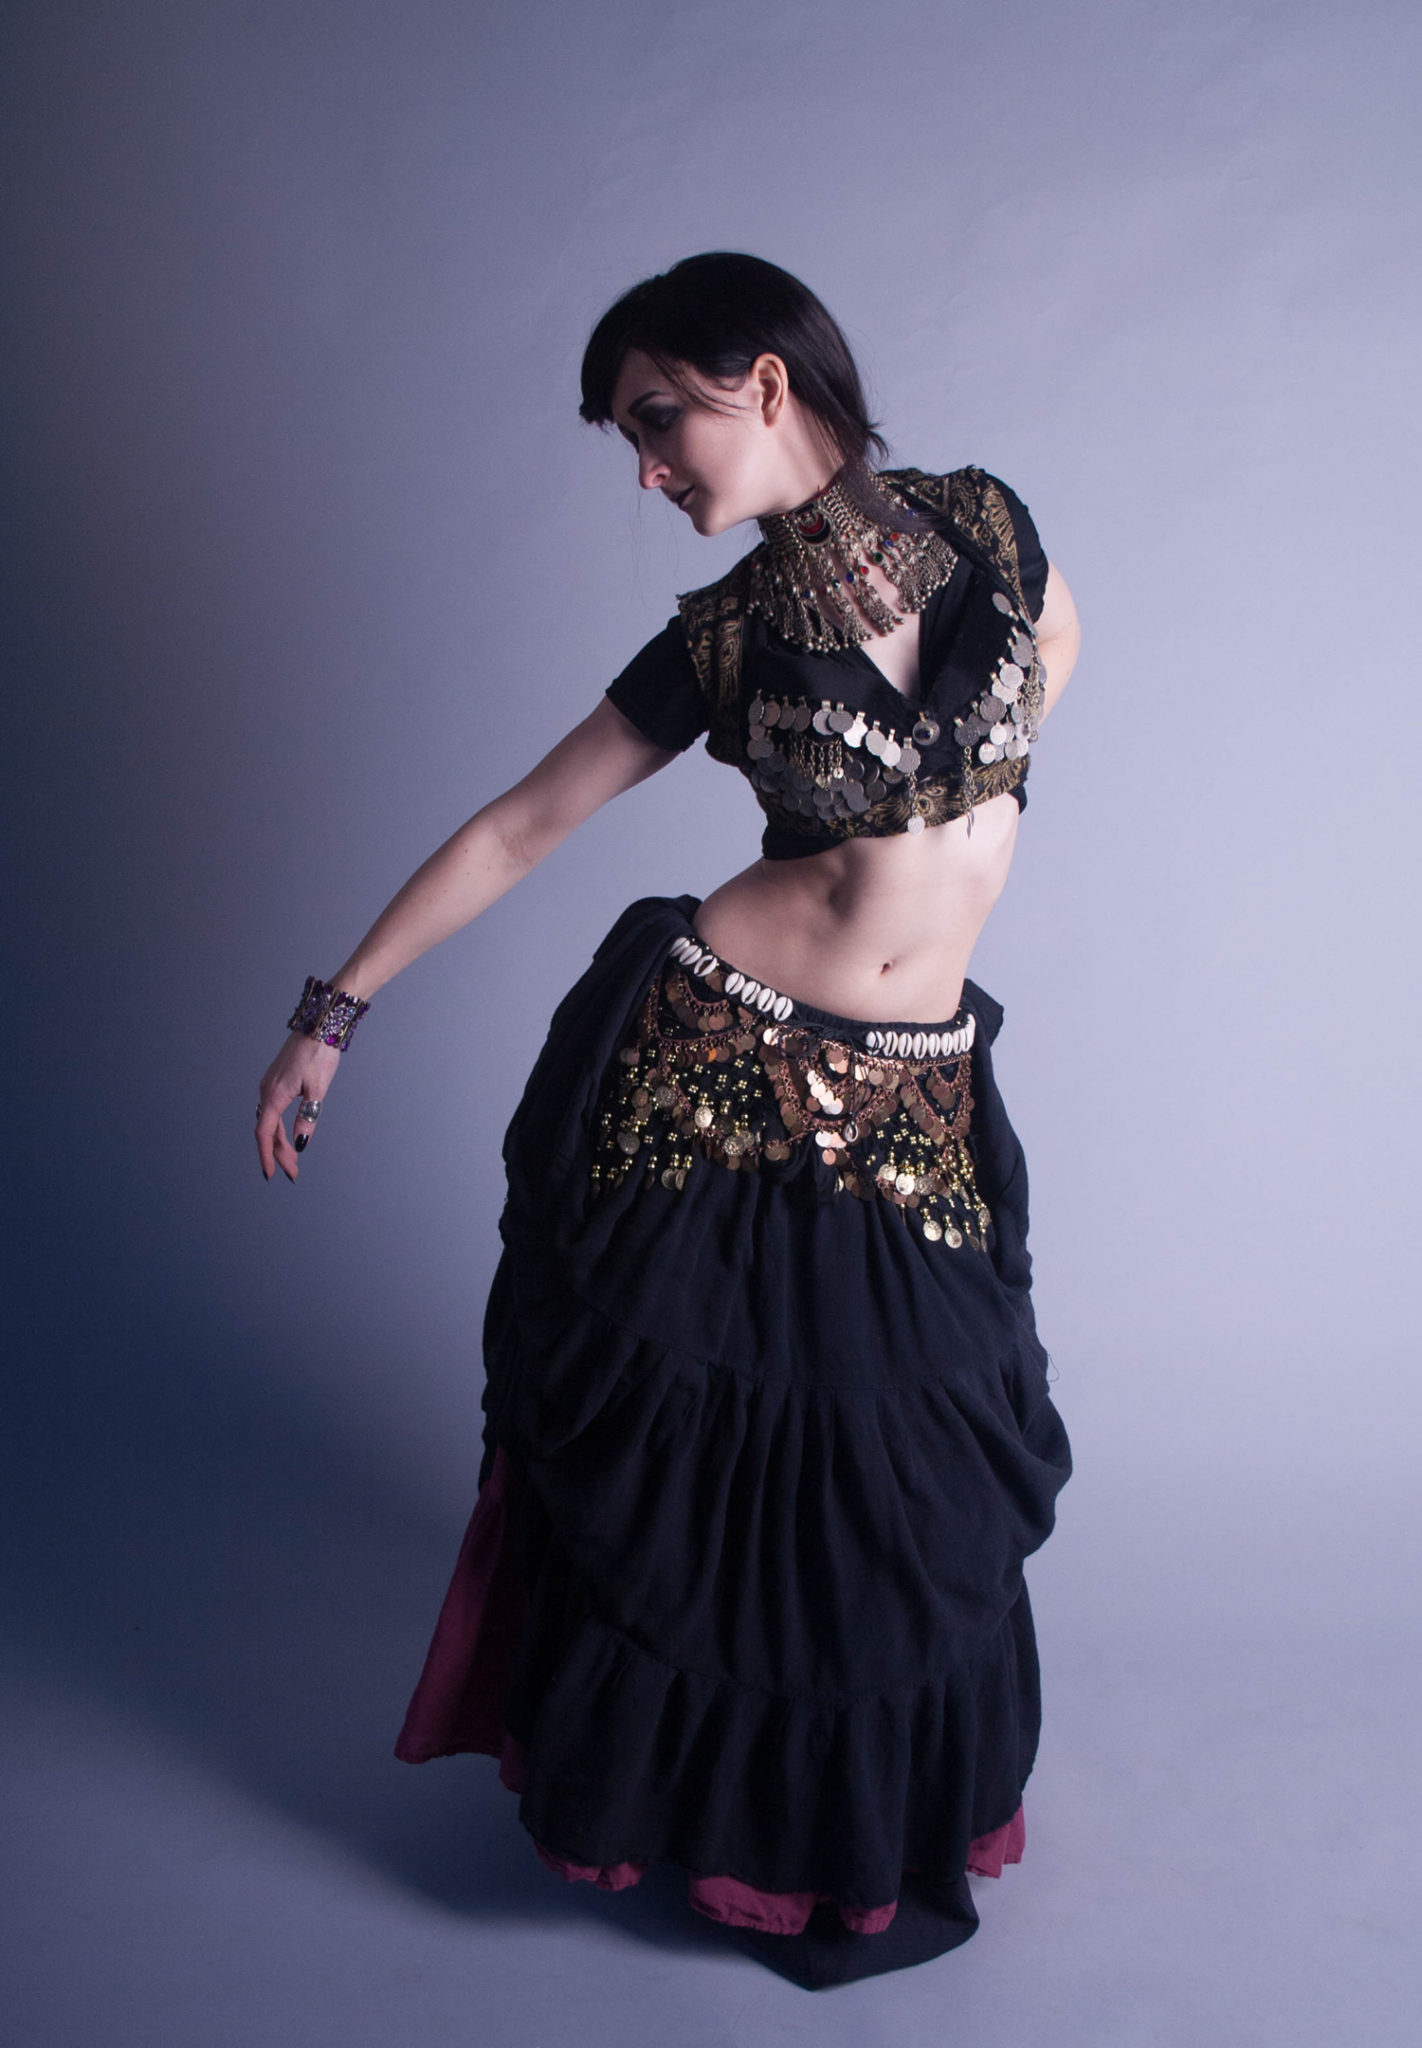 Belly dancer portrait,